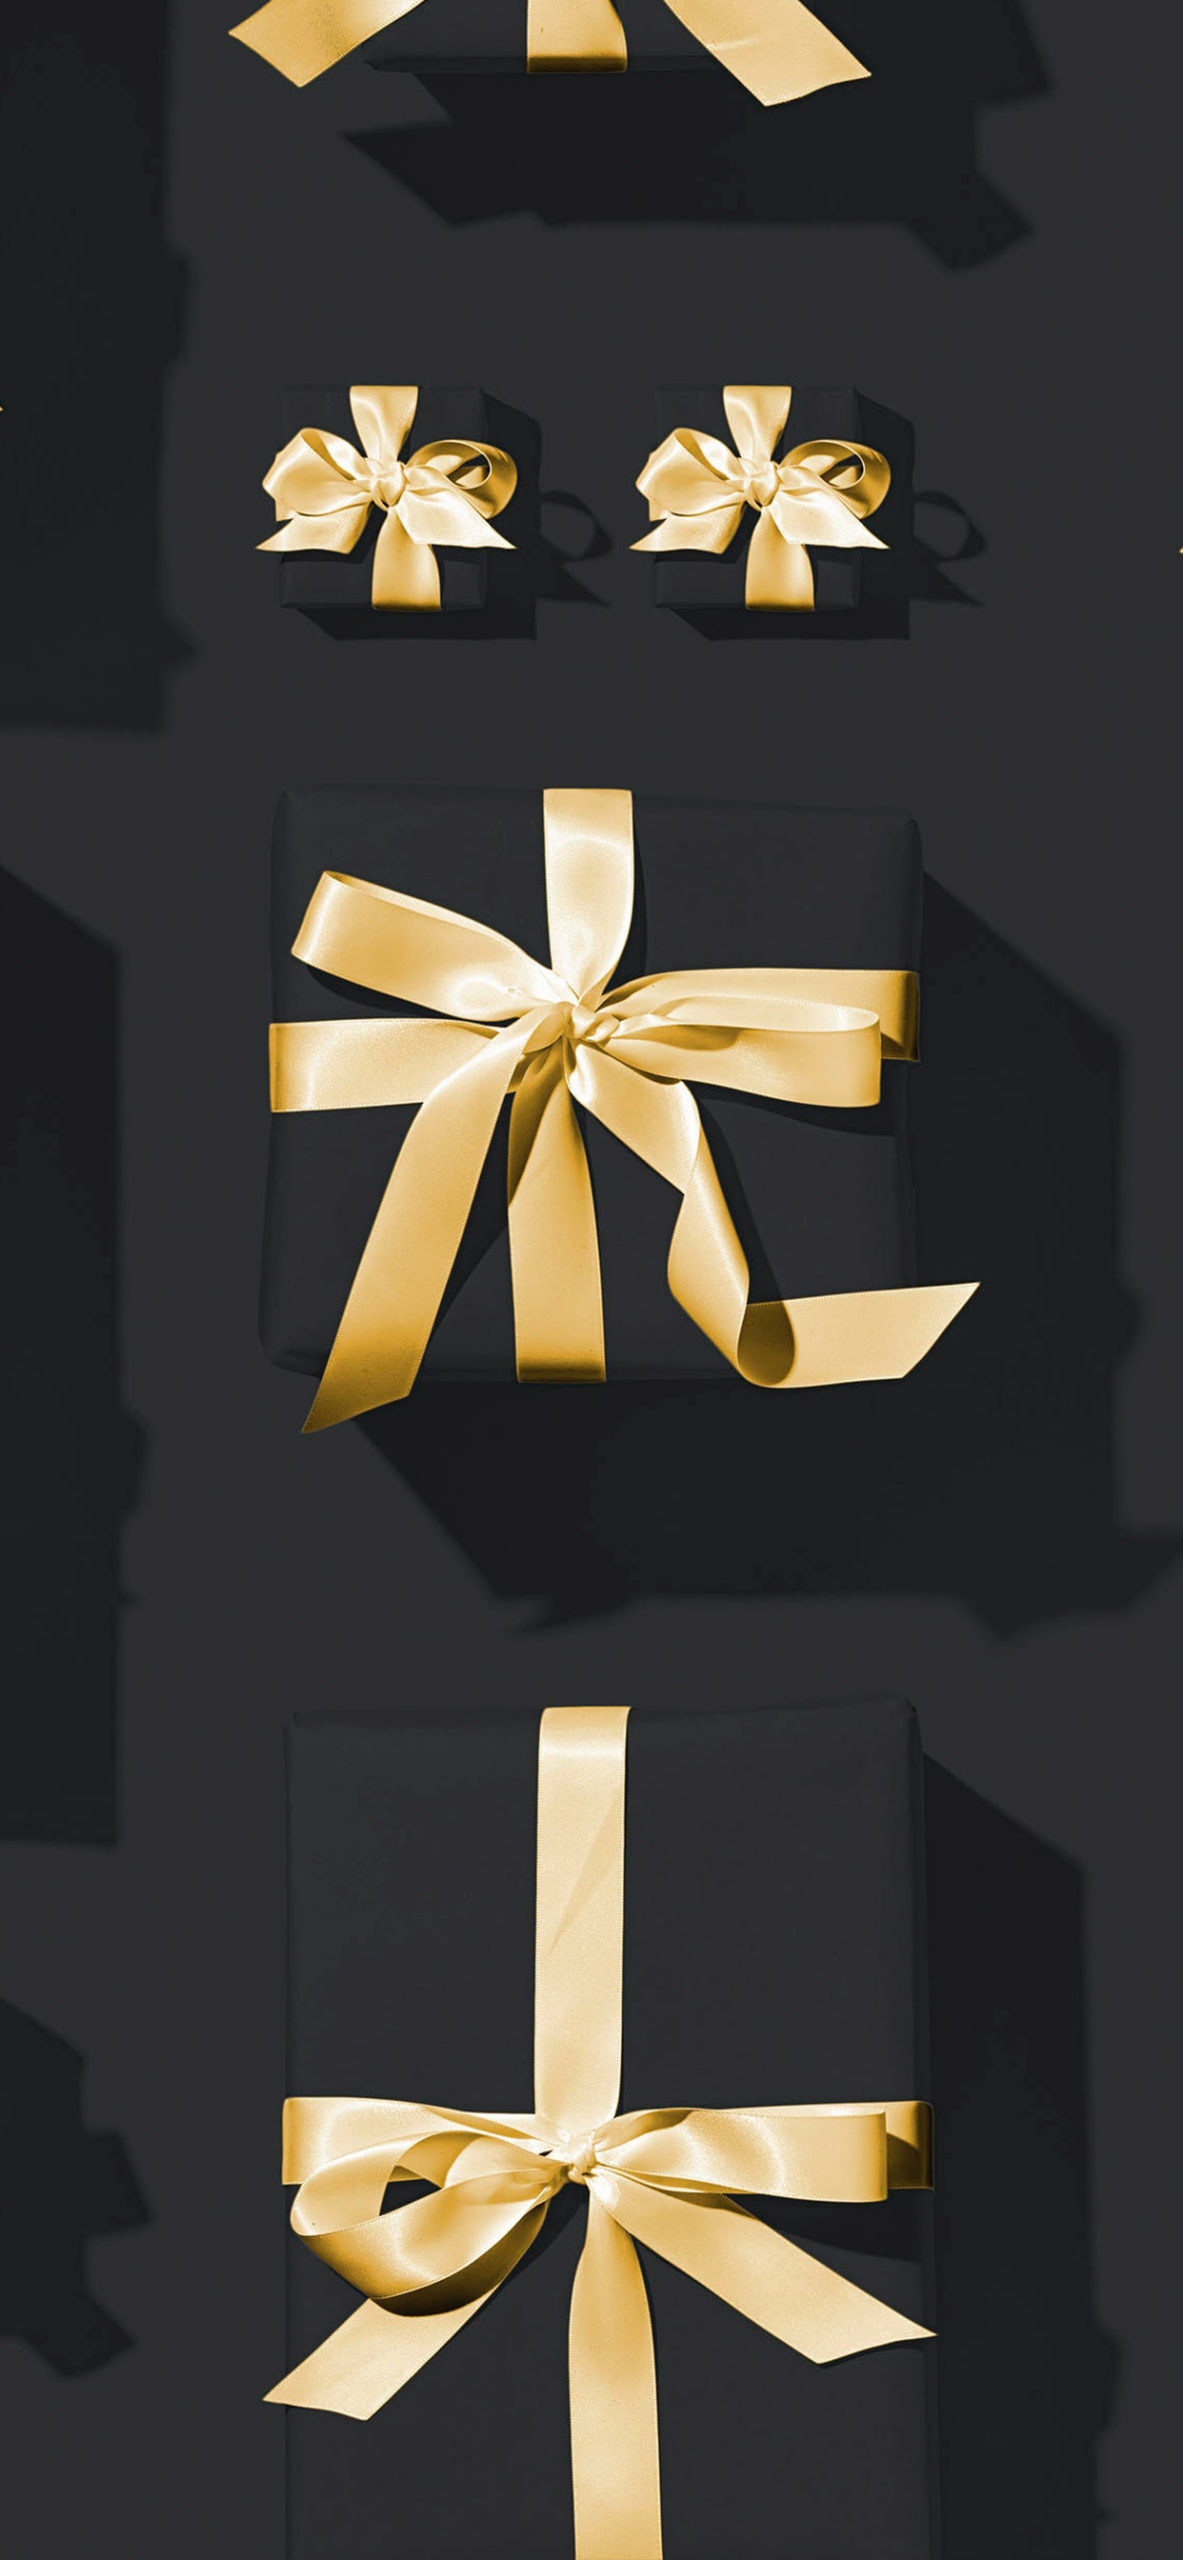 iphone wallpapers gigts1 scaled Gifts